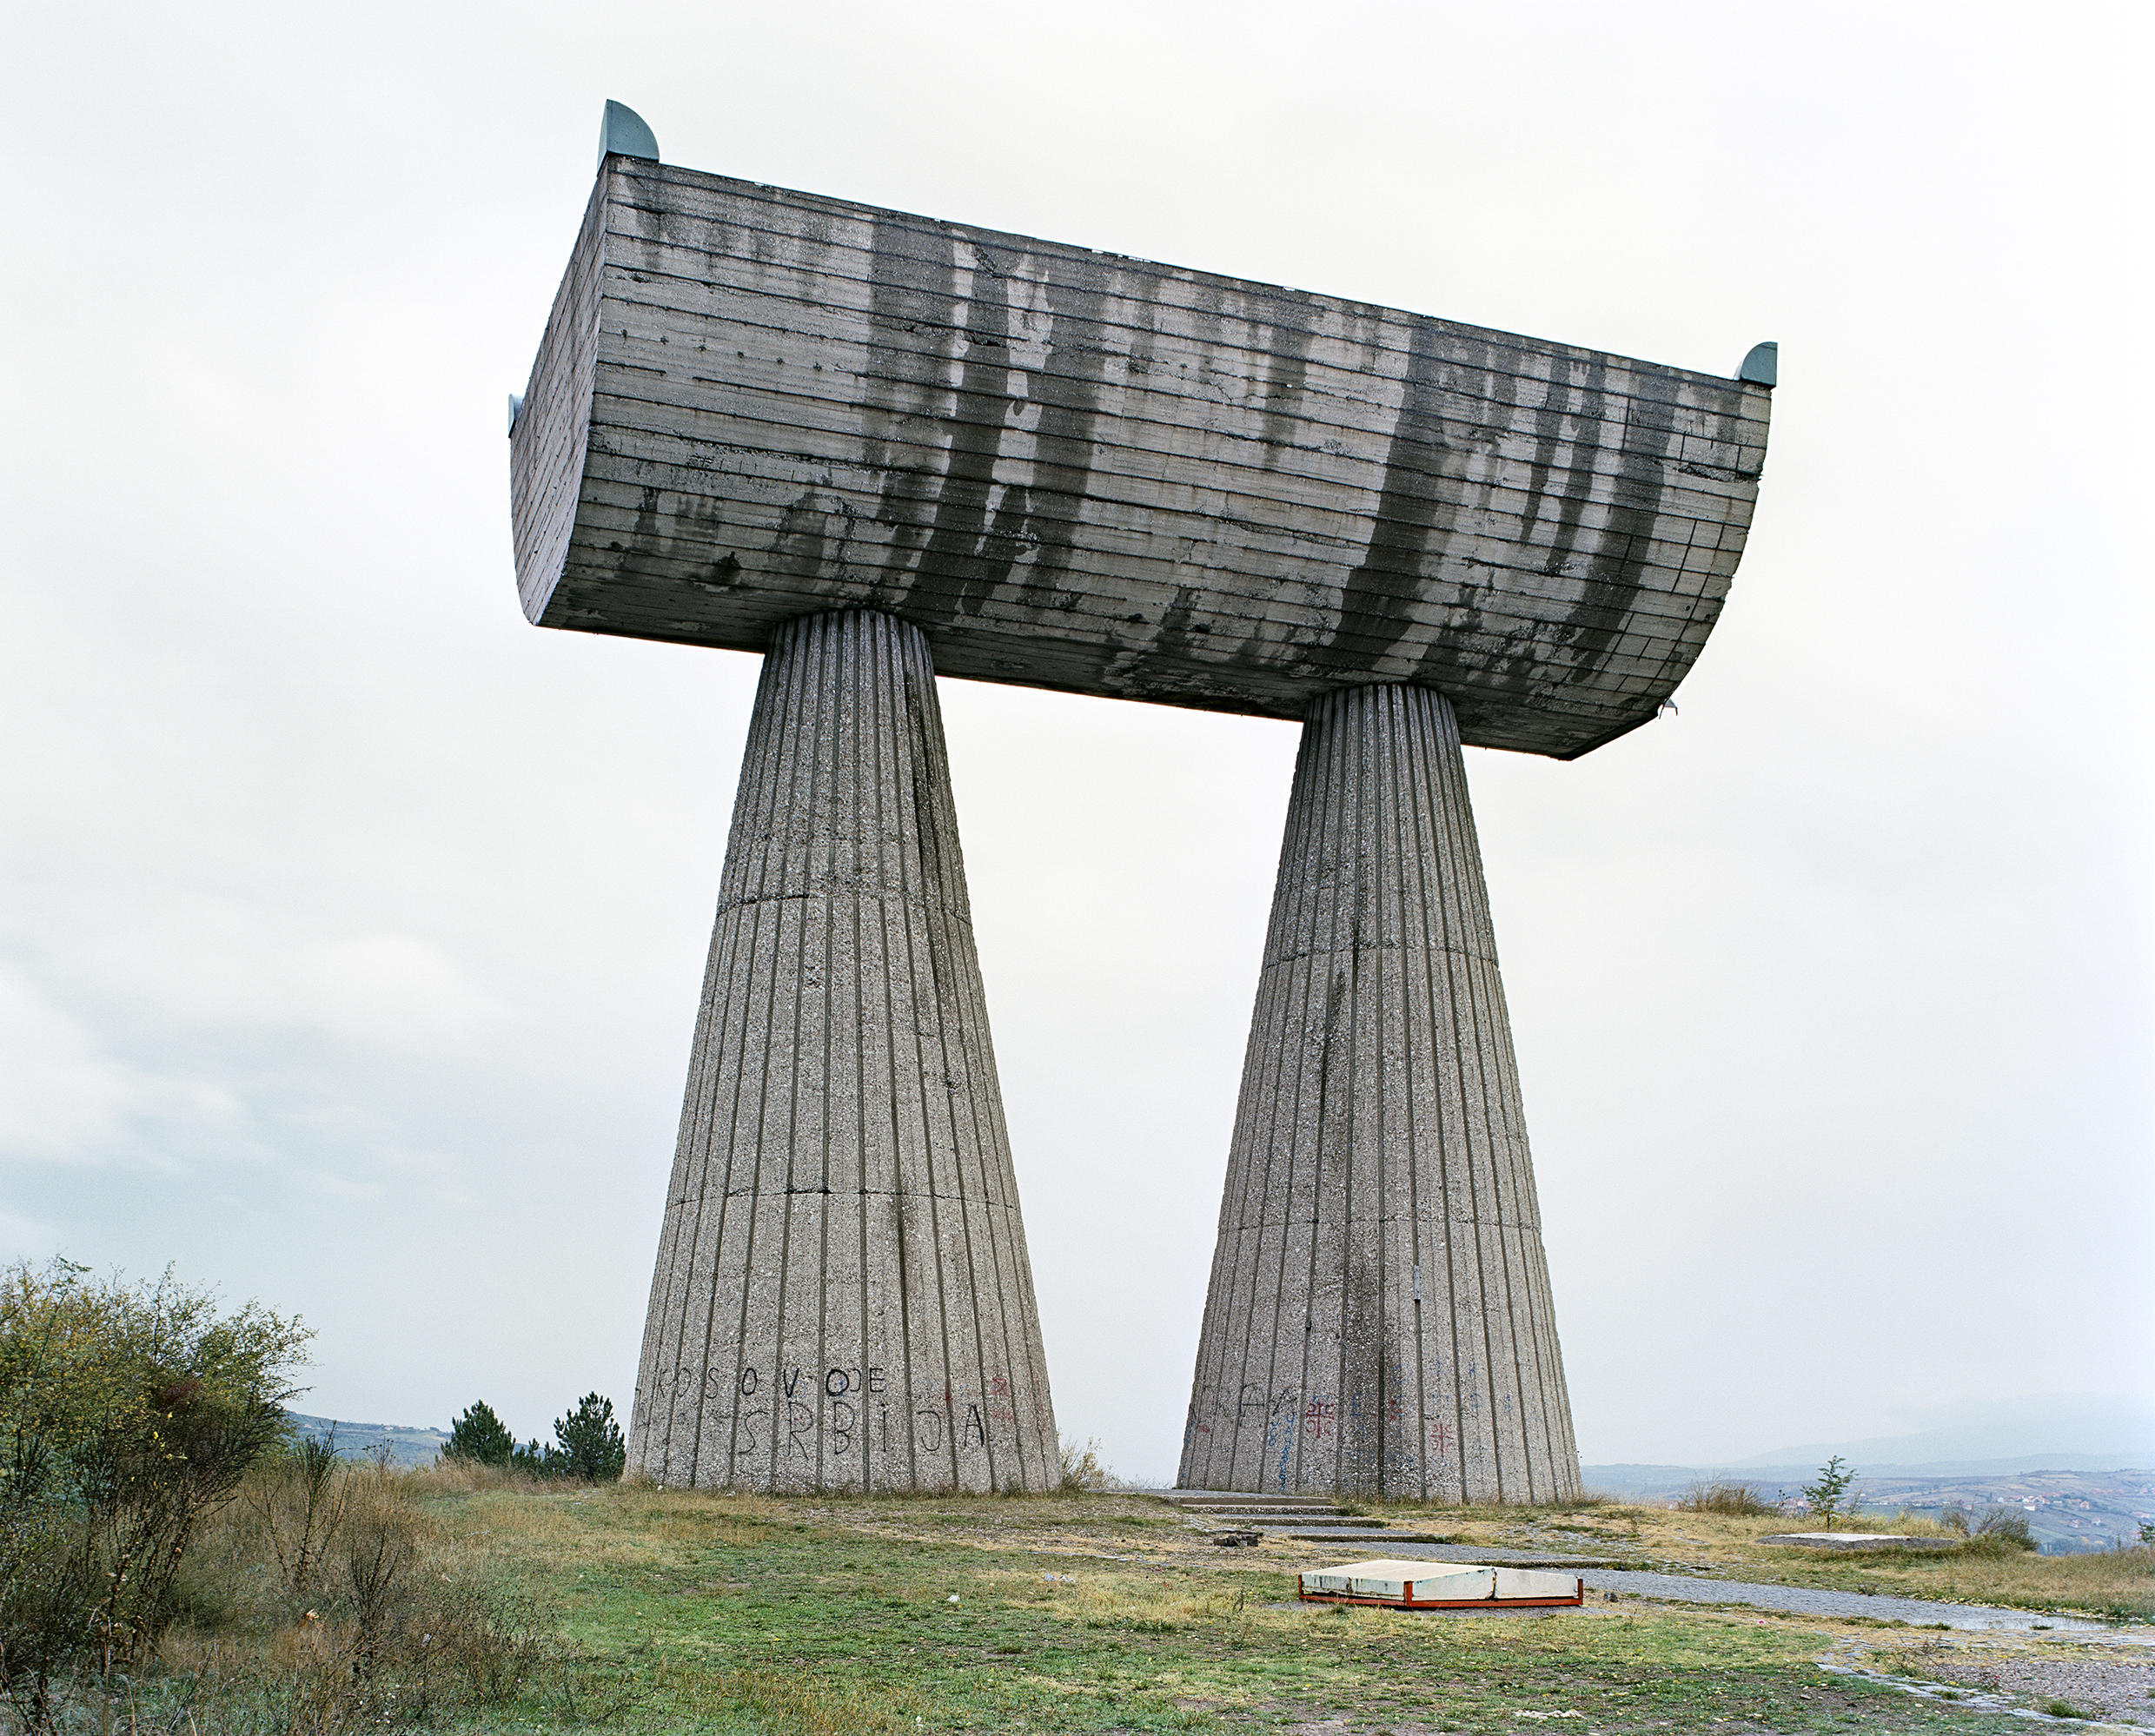 Jan Kempenaers, Mitrovića from his 2010 publication 'Spomenik'. Standing in the form of some lost Roman addition to Stonehenge, Bogdanović's huge concrete monument in the town of Mitrovica is a homage to those who were lost during fighting in World War II.